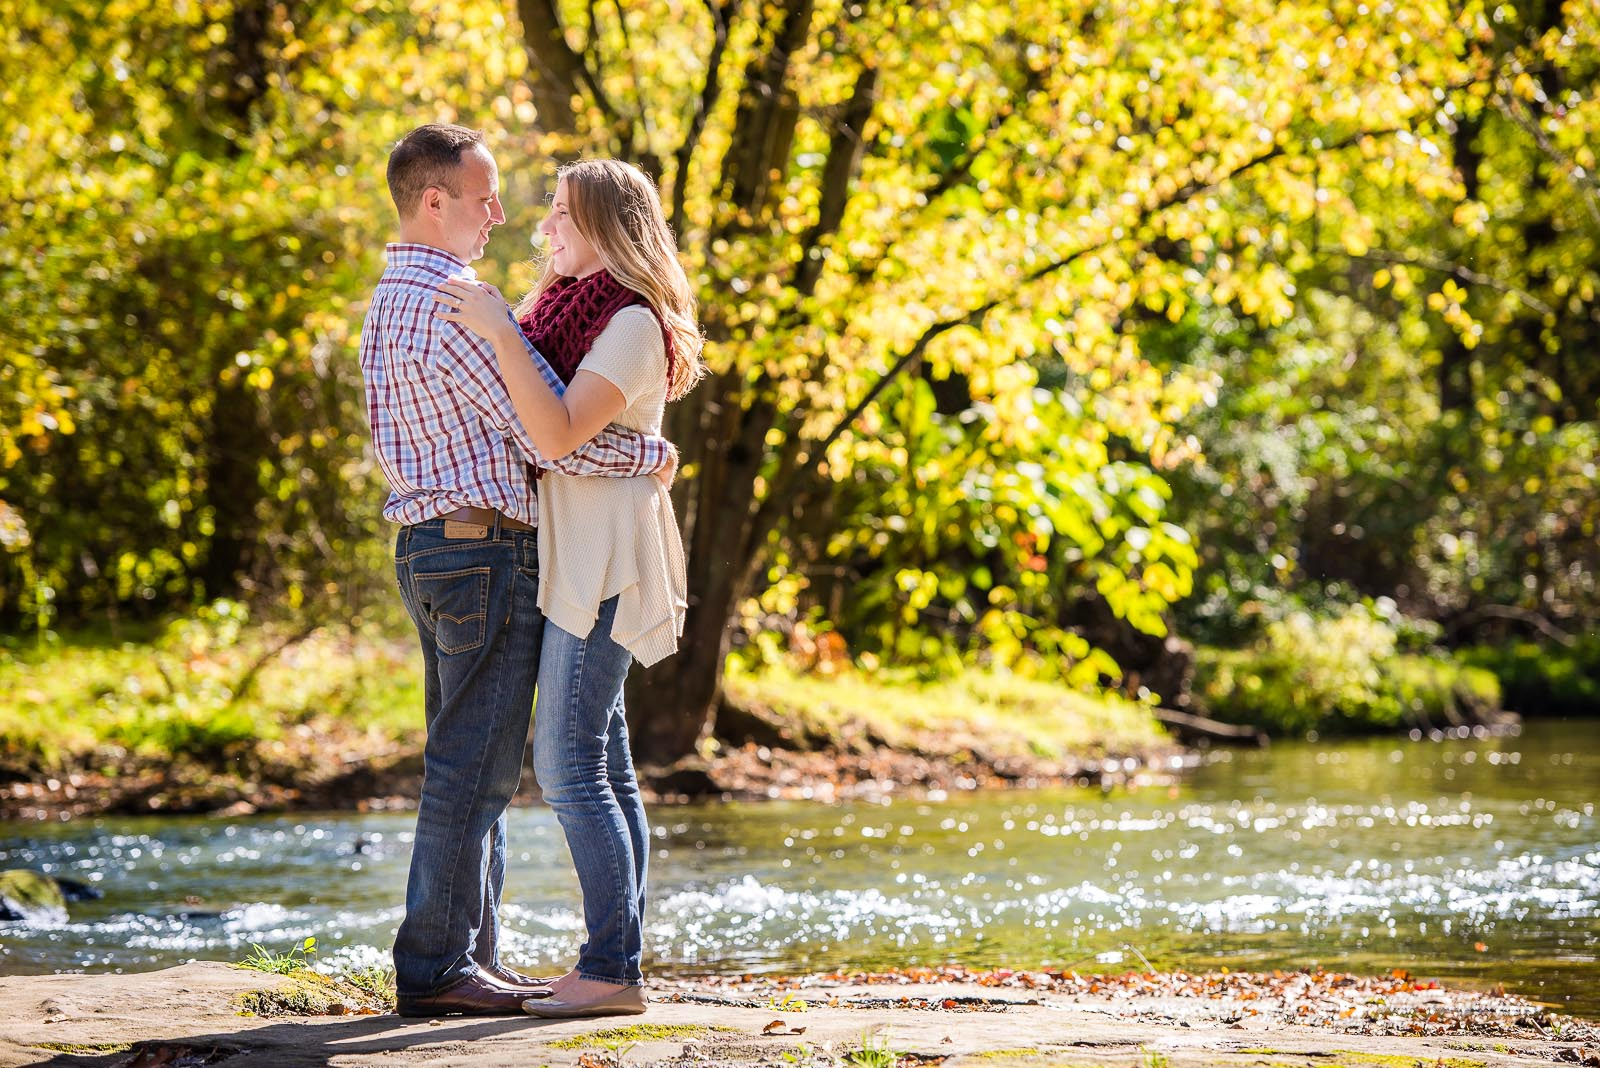 Eric_and_Christy_Photography_Blog_Megan_Nate_Engagement-15